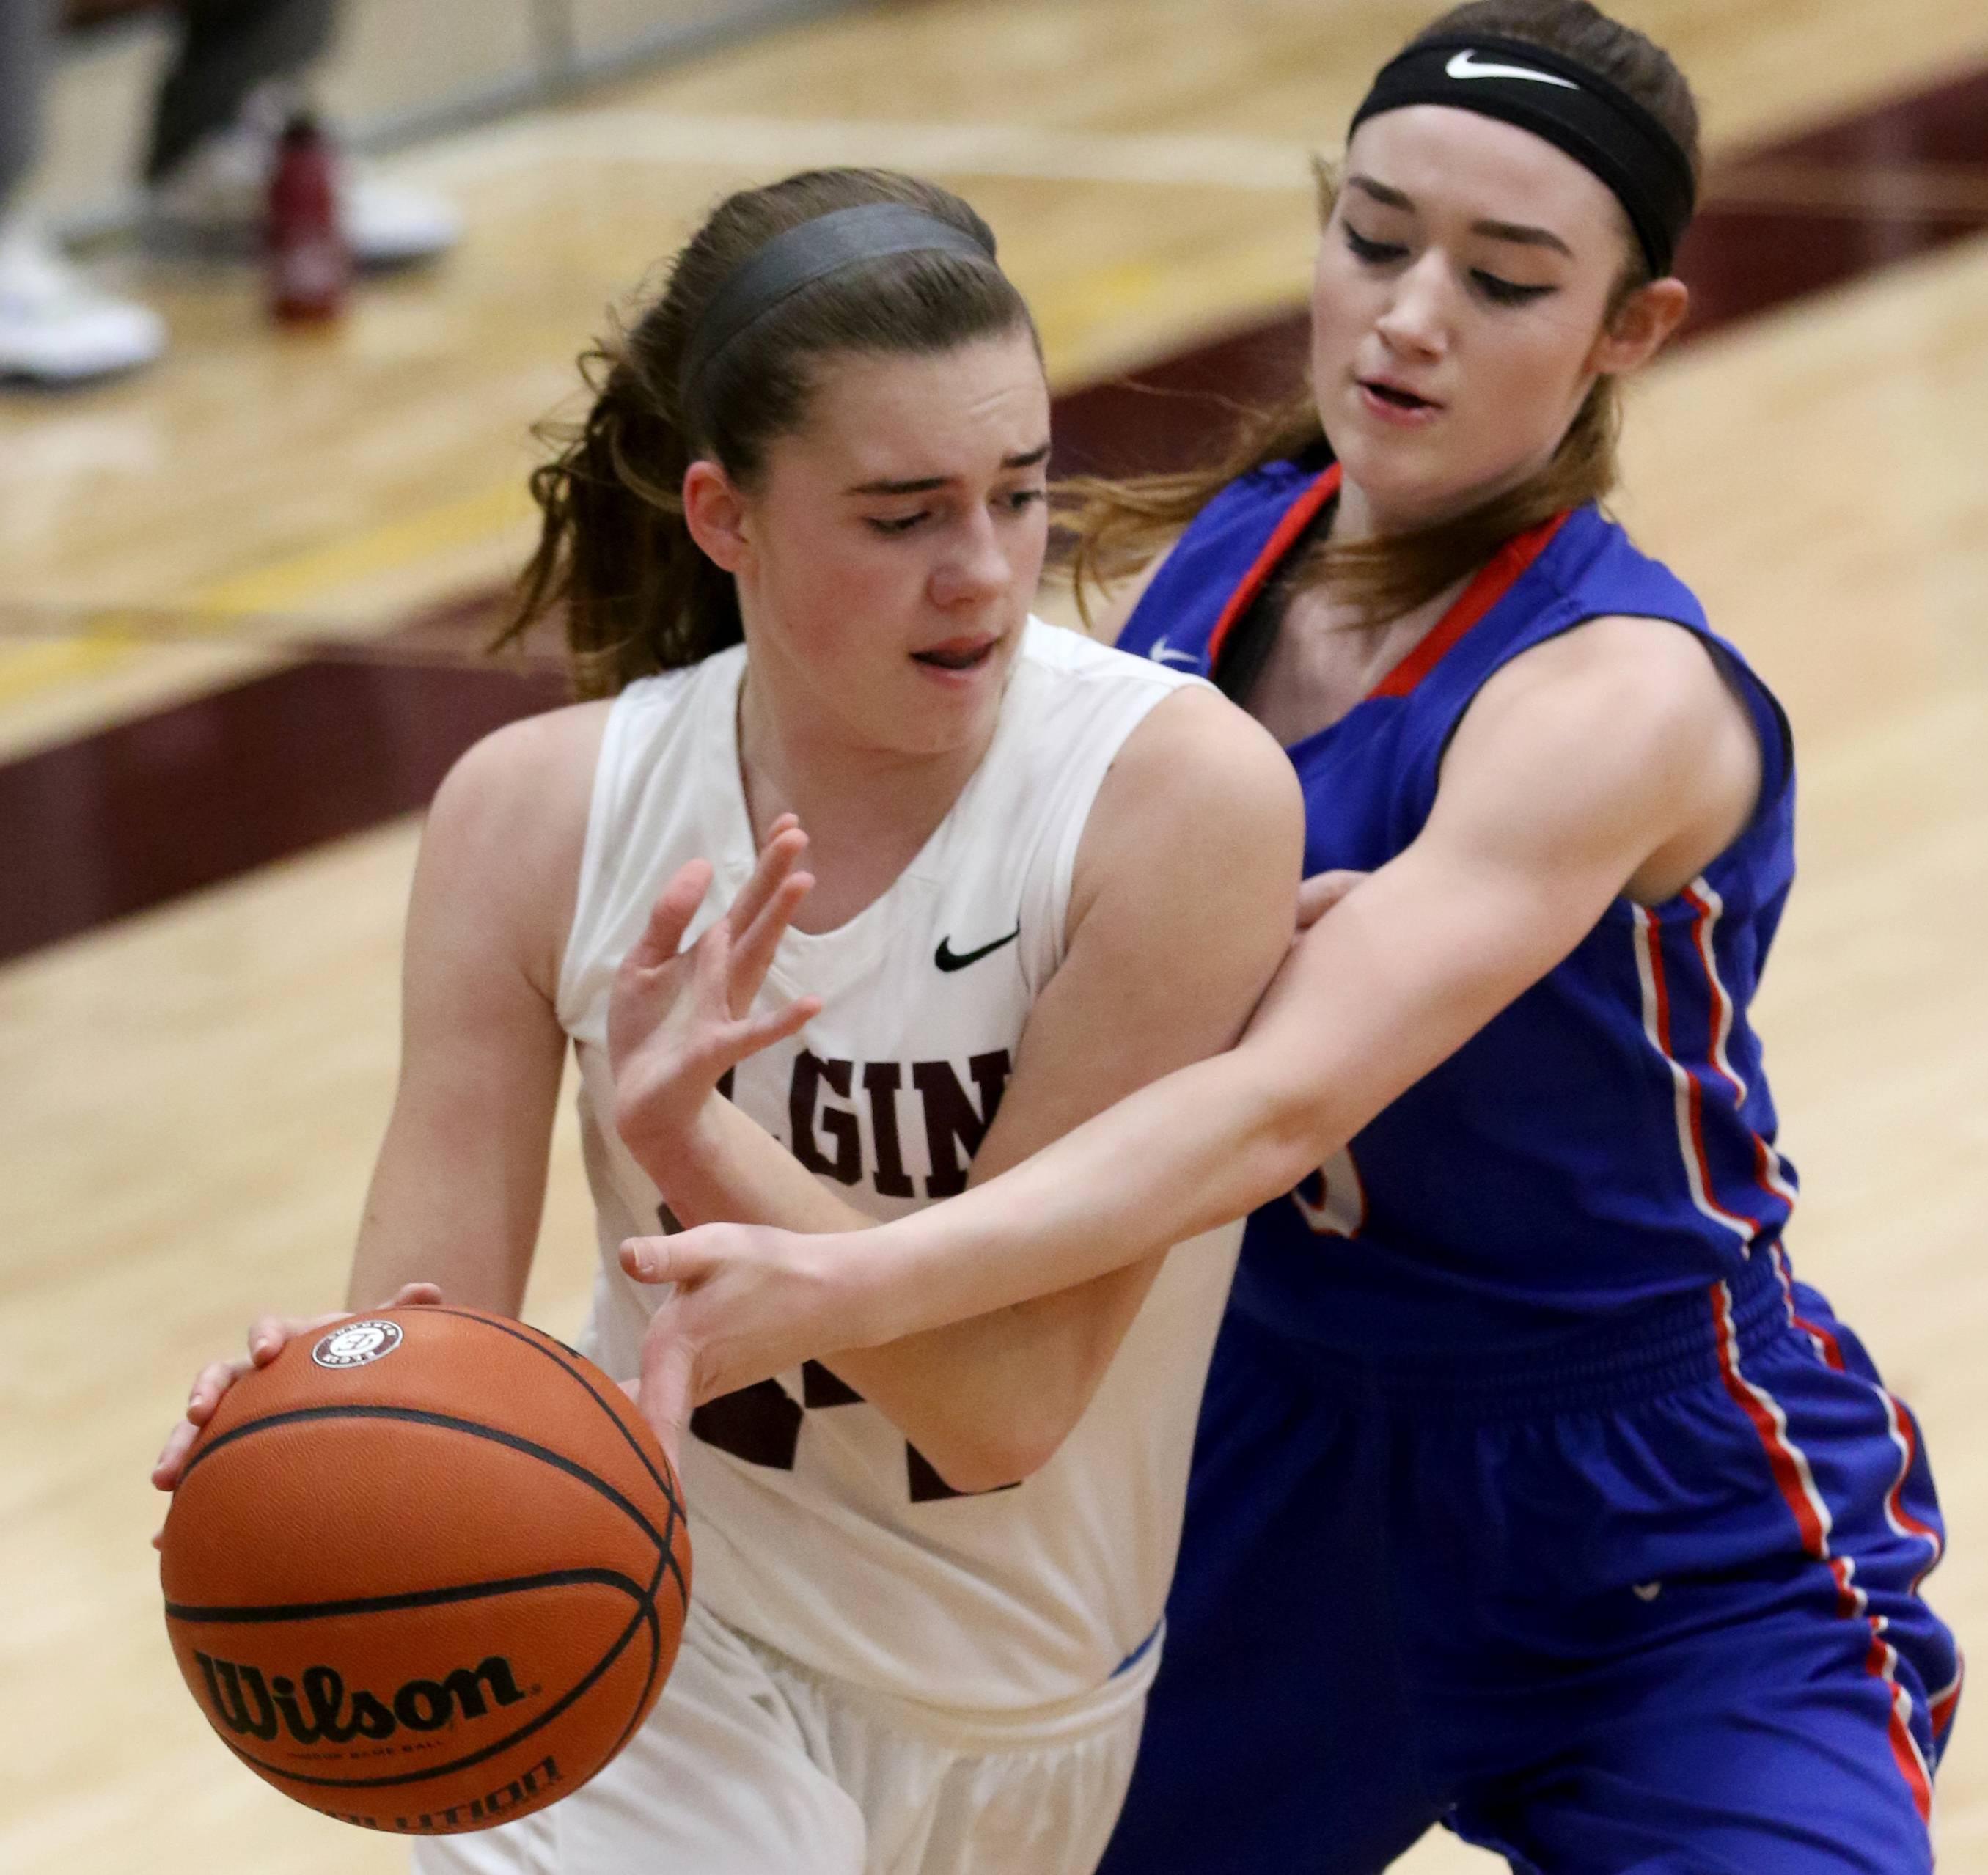 Larkin's Amber Allen, right, defends Elgin's Emily Graves during the Elgin City Classic girls basketball tournament at Chesbrough Fieldhouse on the campus of Elgin High School Wednesday night.